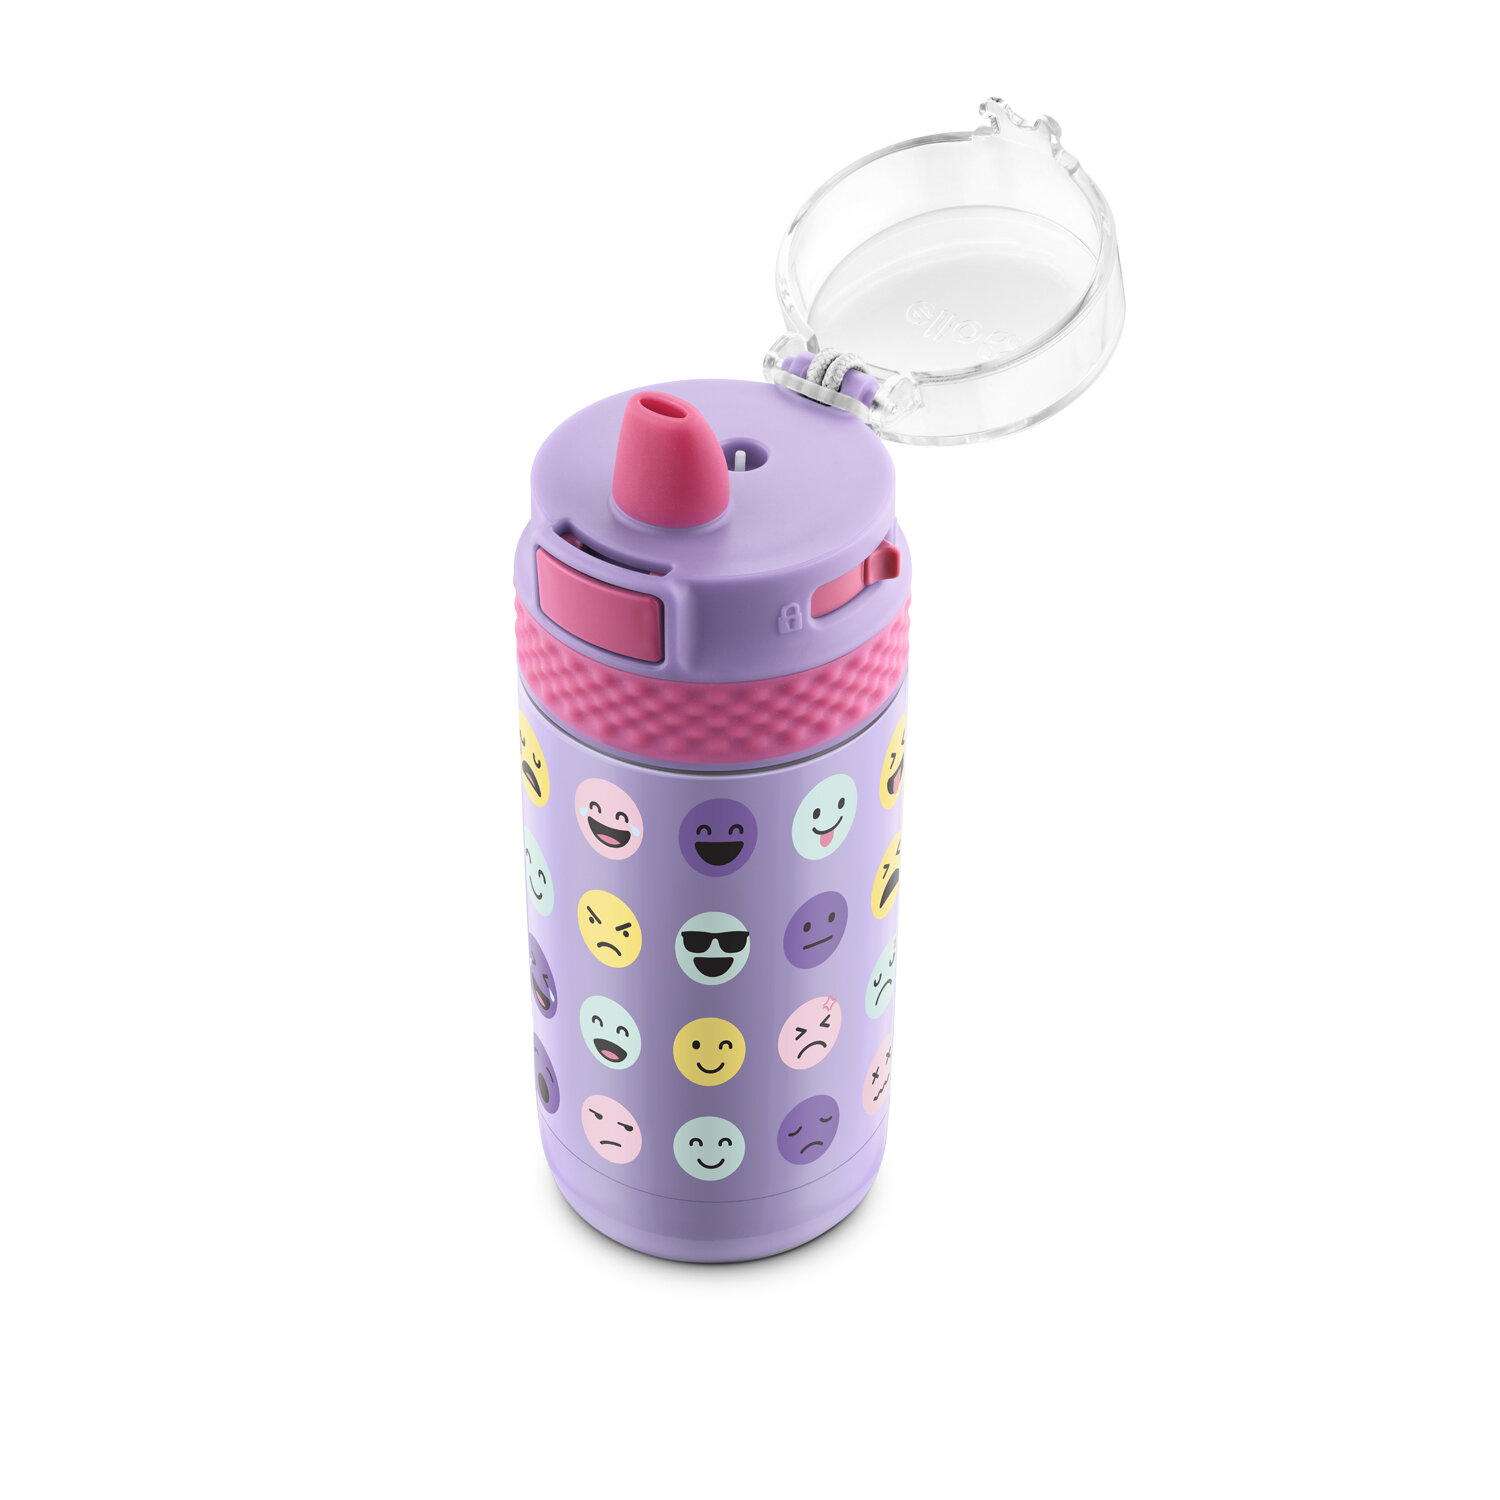 Smiley Faces Ello Ride 12oz Stainless Steel Kids Water Bottle